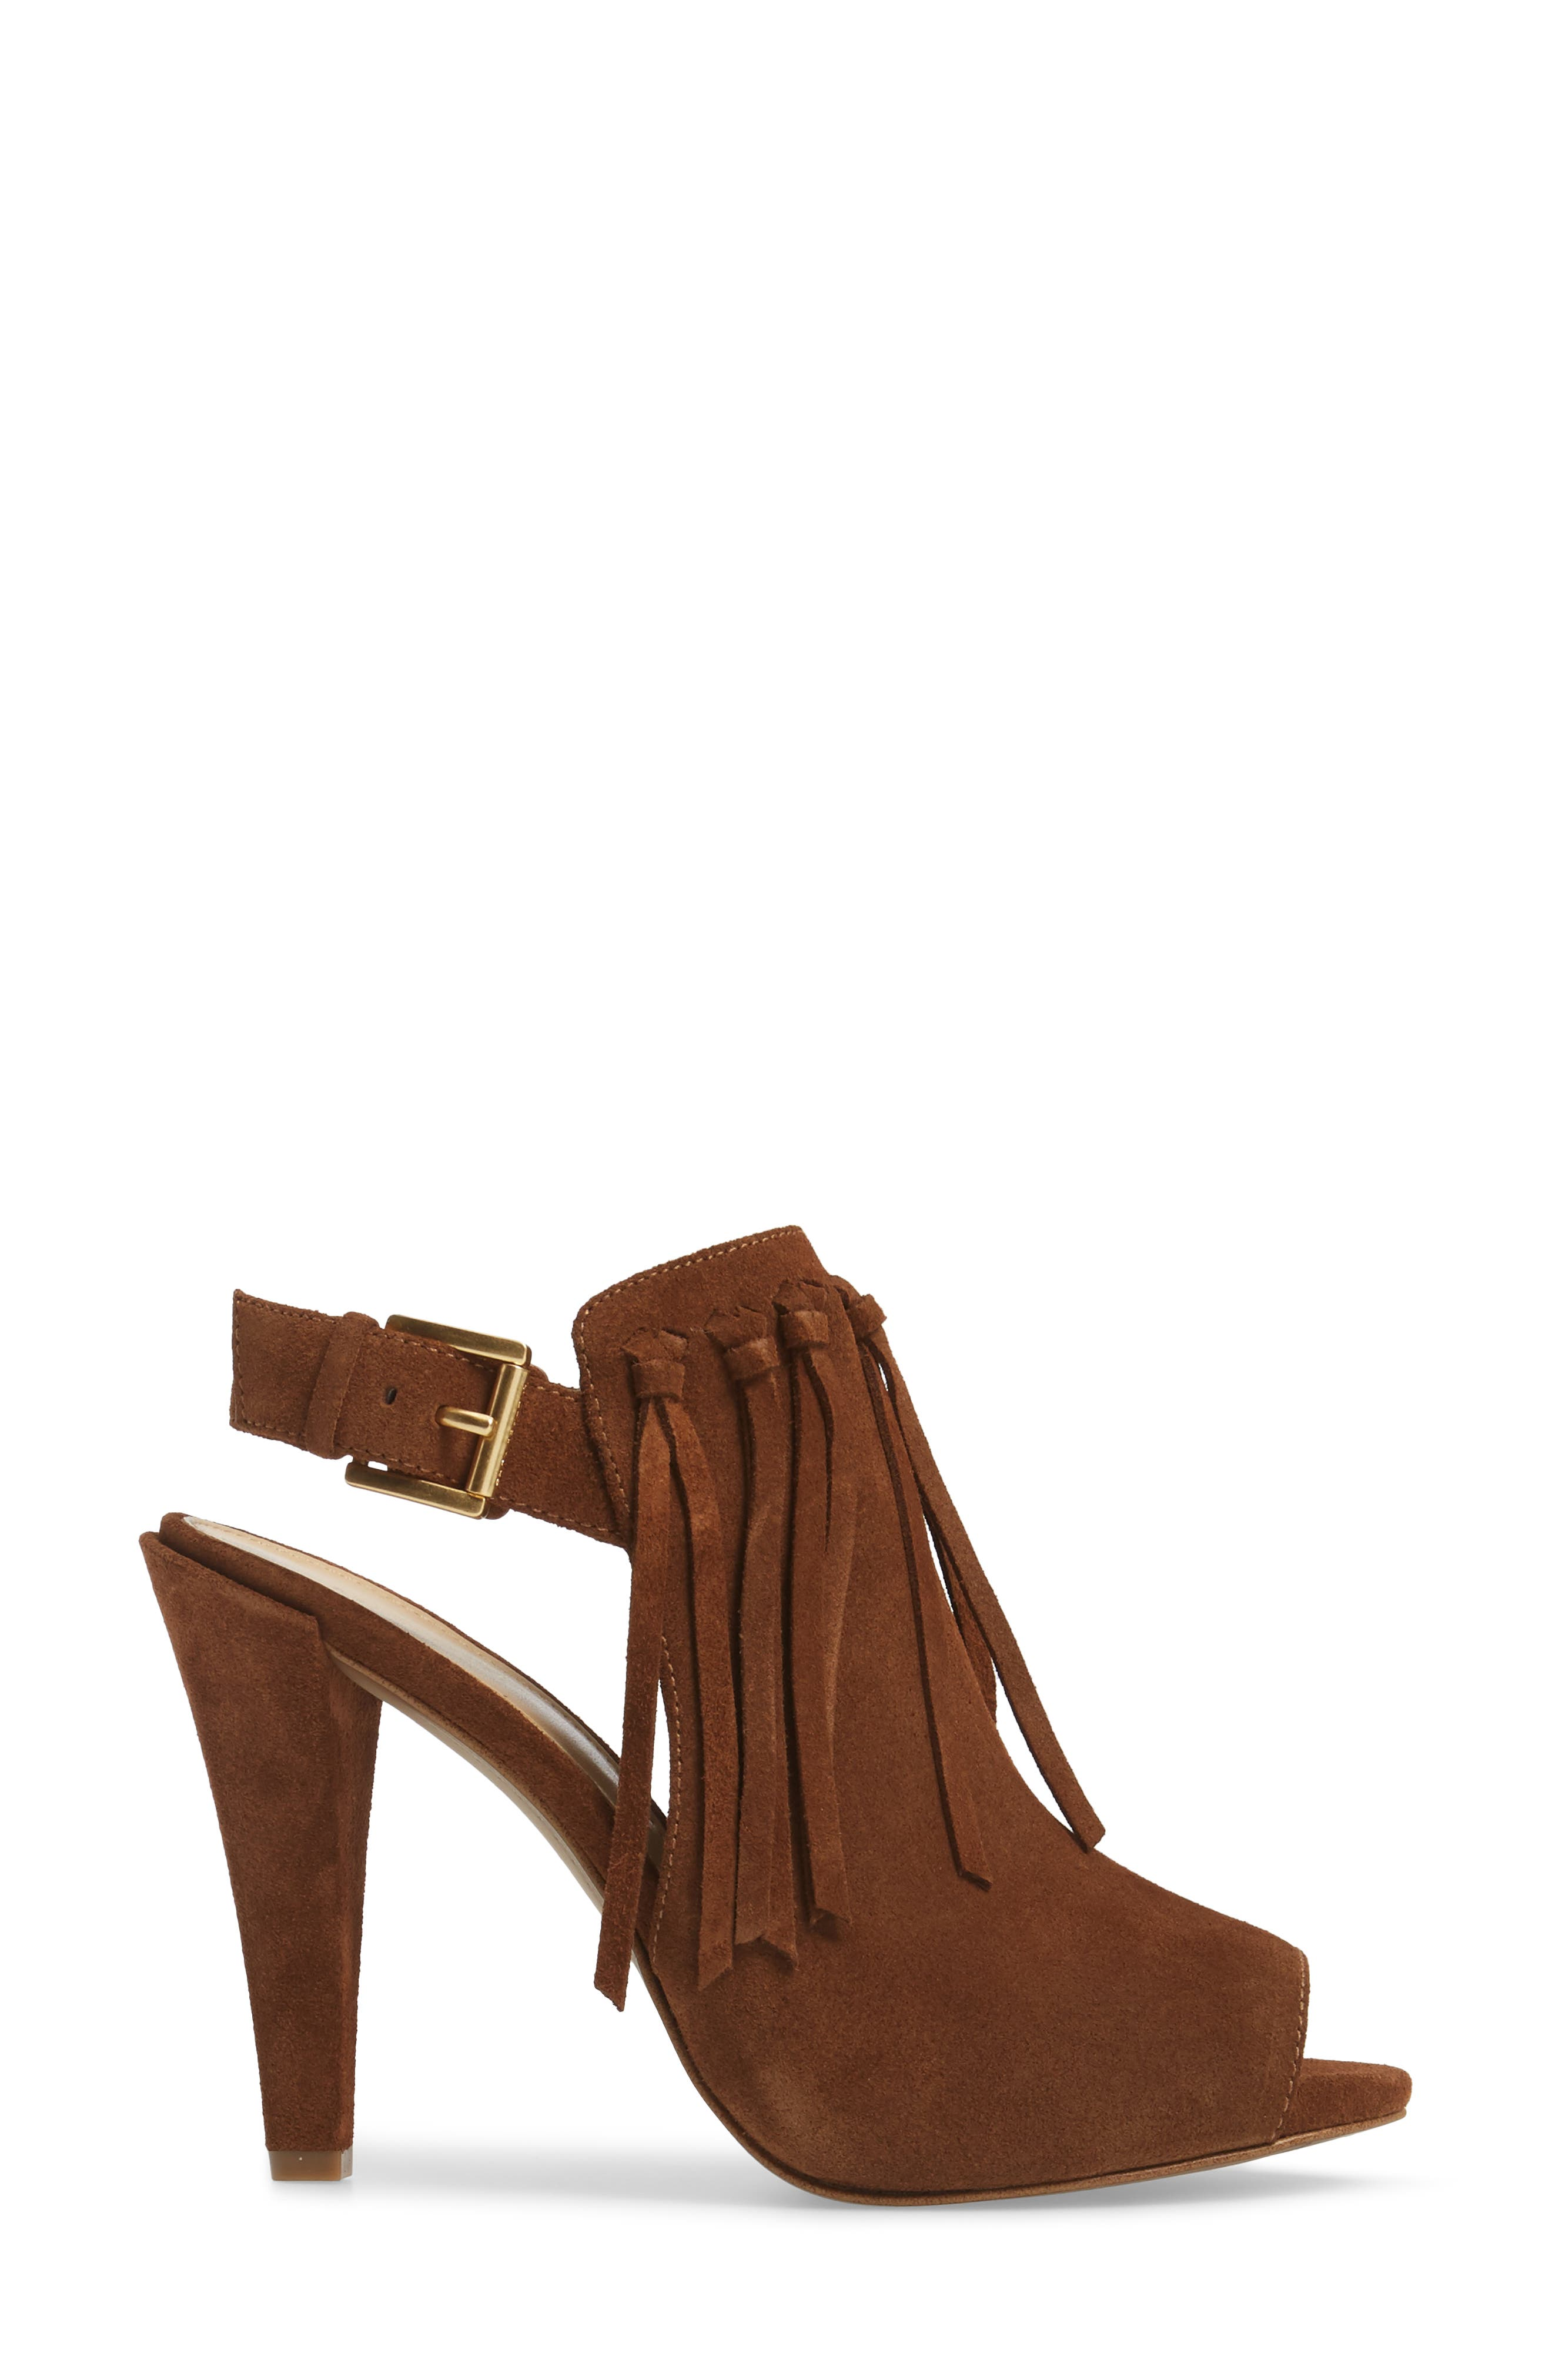 Kassidy Open Toe Bootie,                             Alternate thumbnail 6, color,